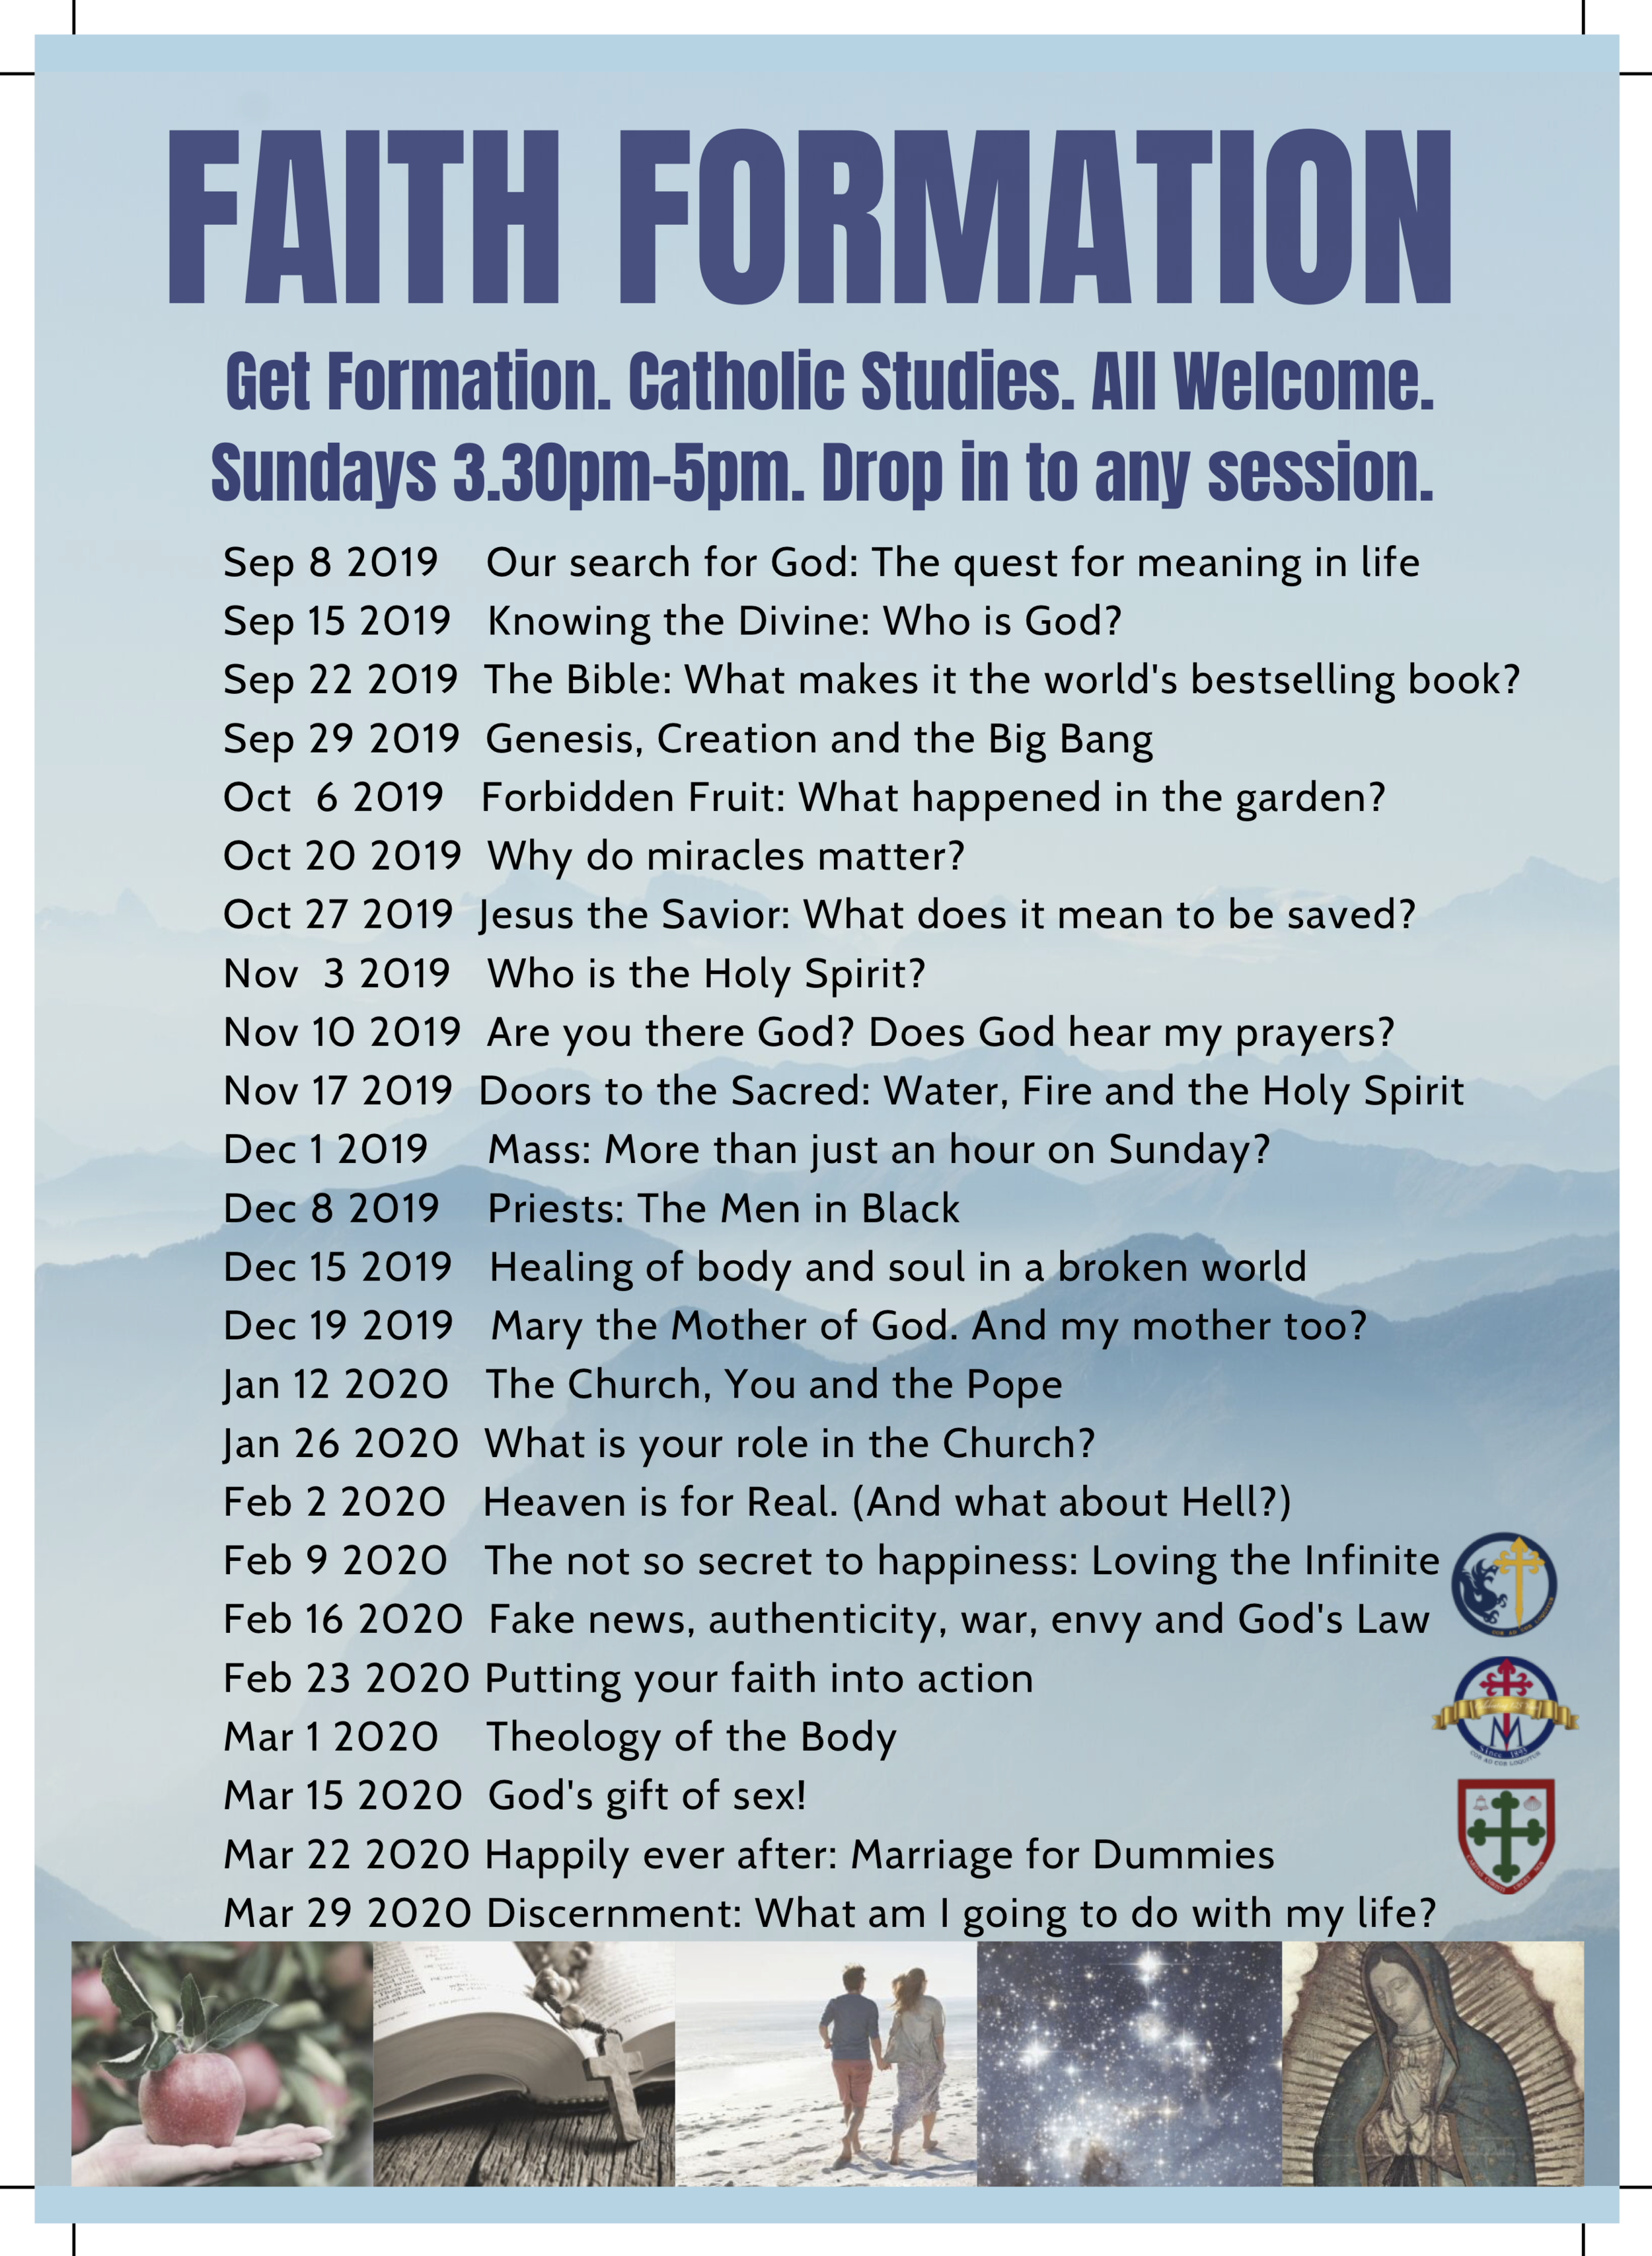 FAITH FORMATION Scheduale2019_Final.png